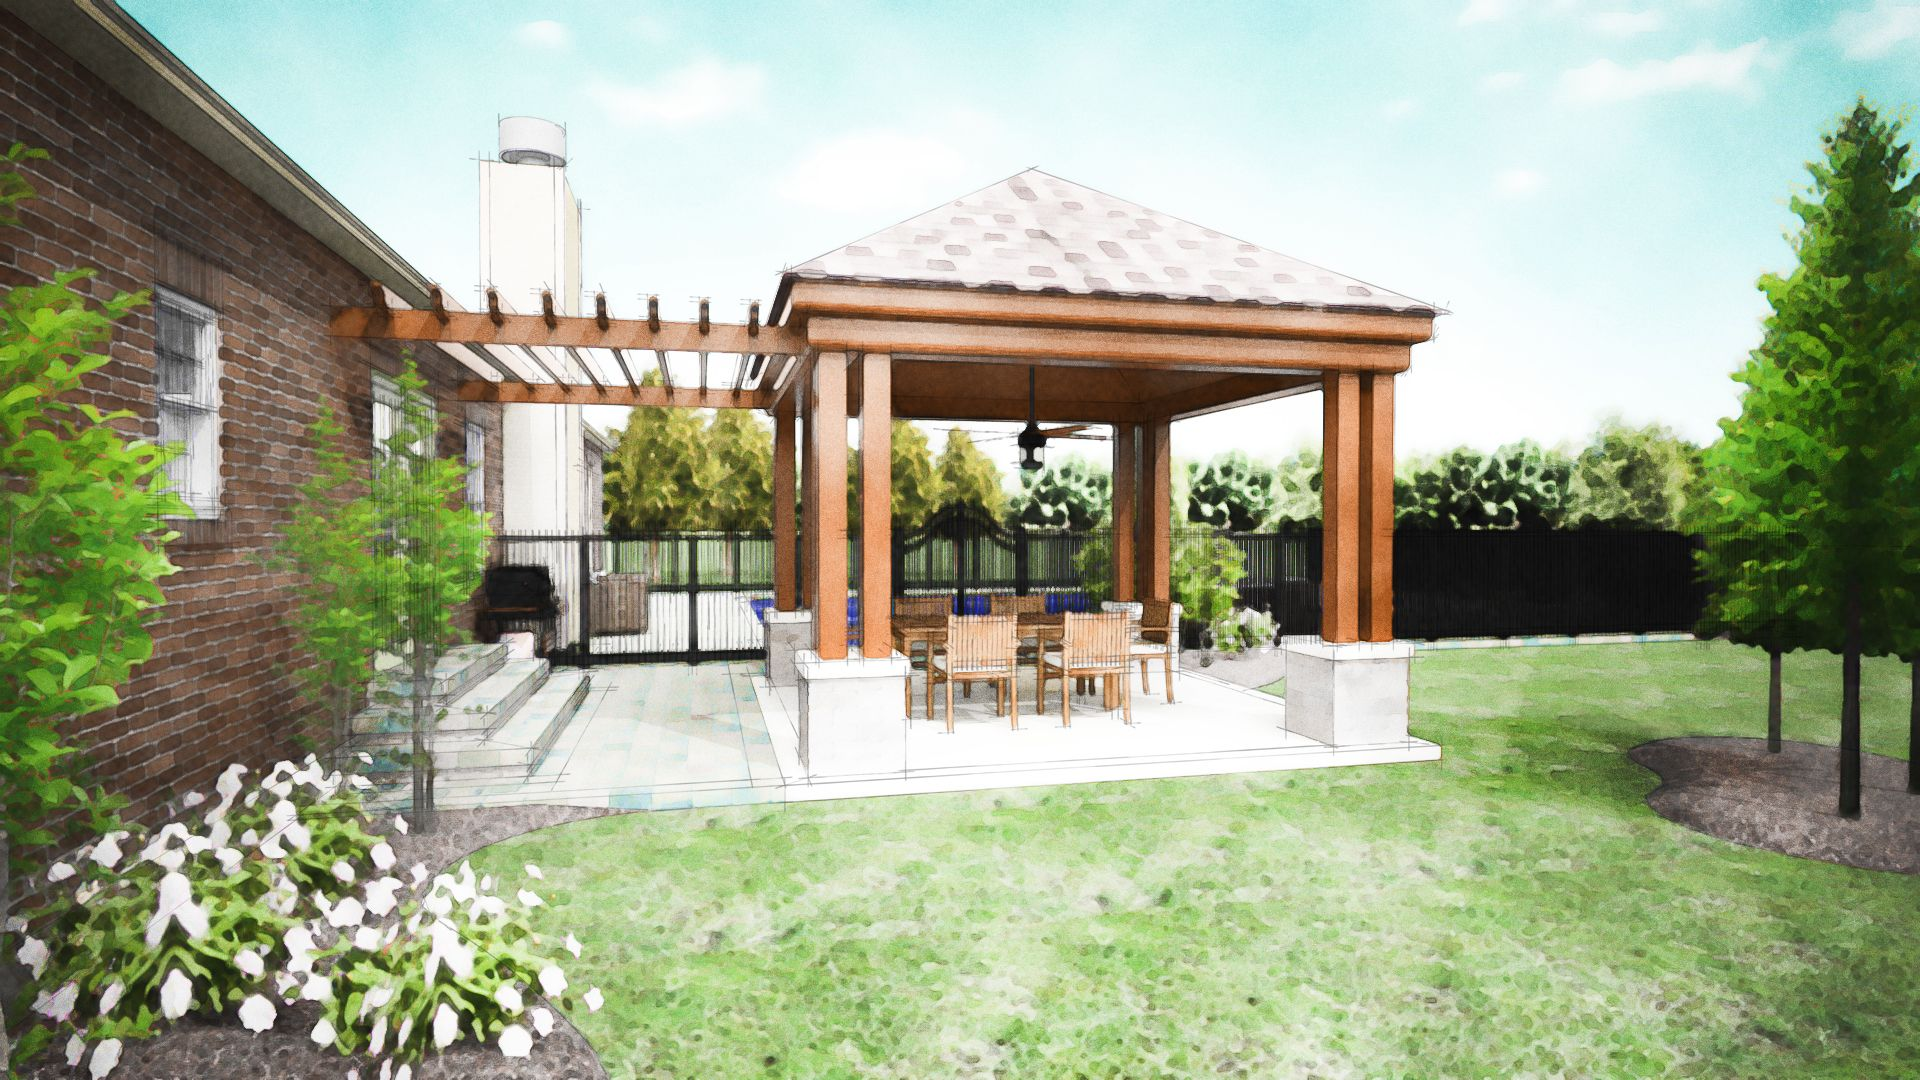 Small backyard covered patio ideas - Covered Patio Design Pictures Covered Patio Company Dayton Patio Cover Designs Columbus Oh